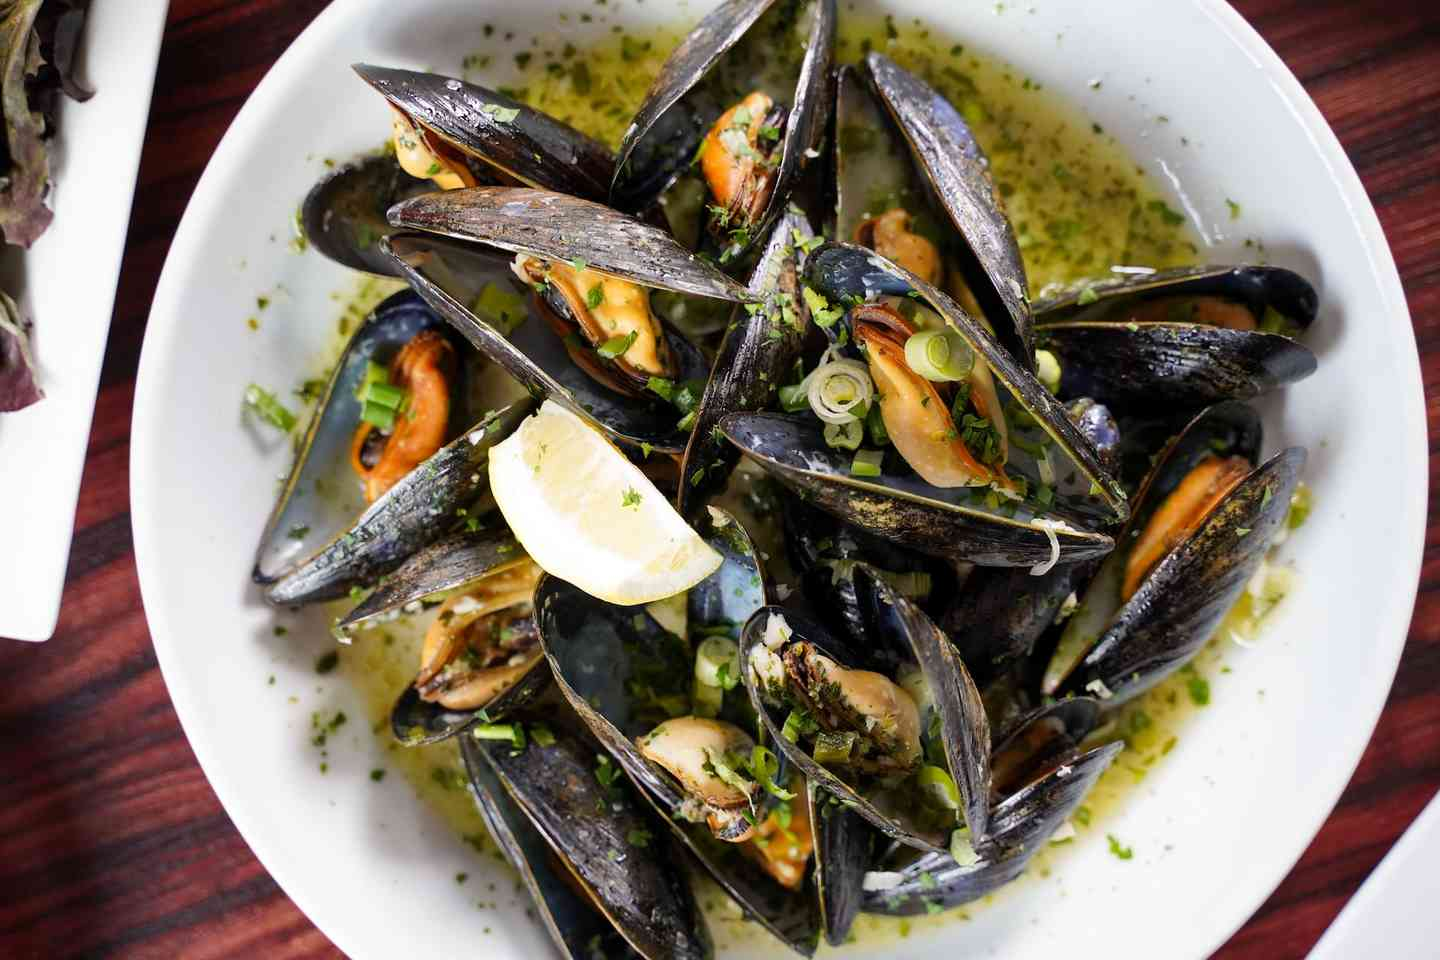 *Mussels